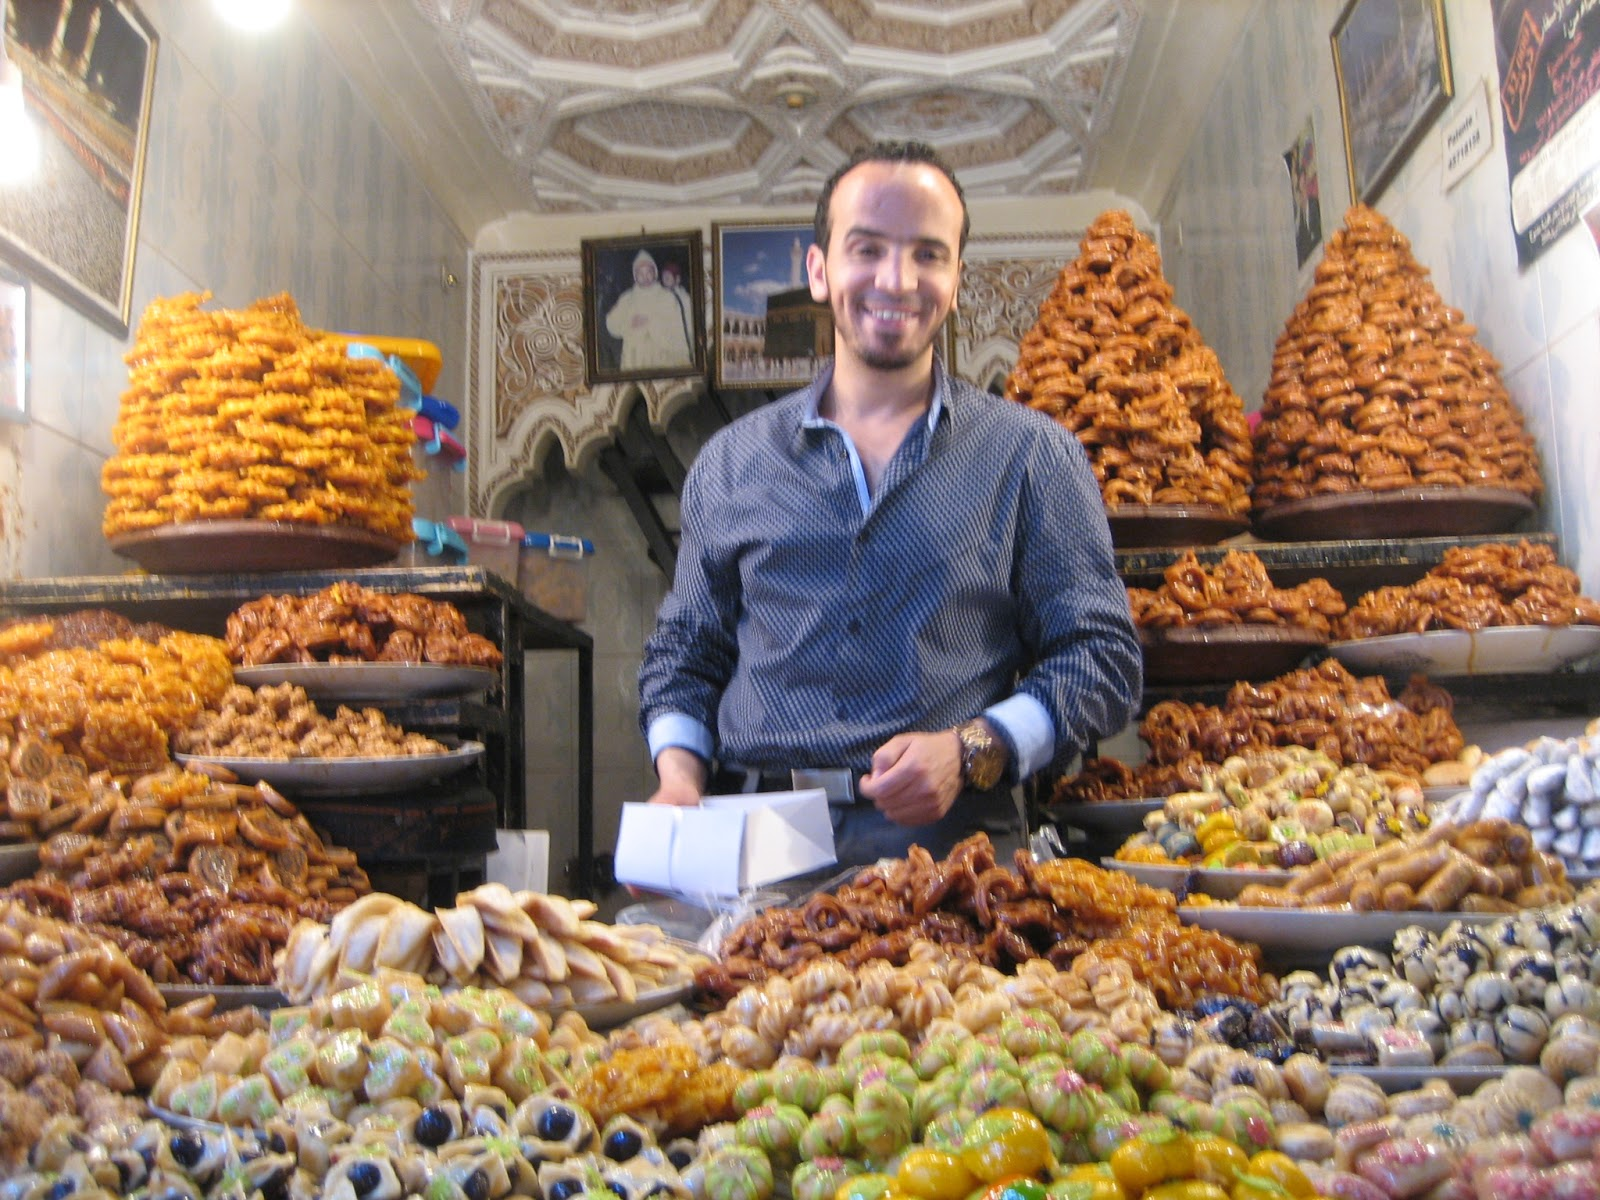 Moroccan sweet talker